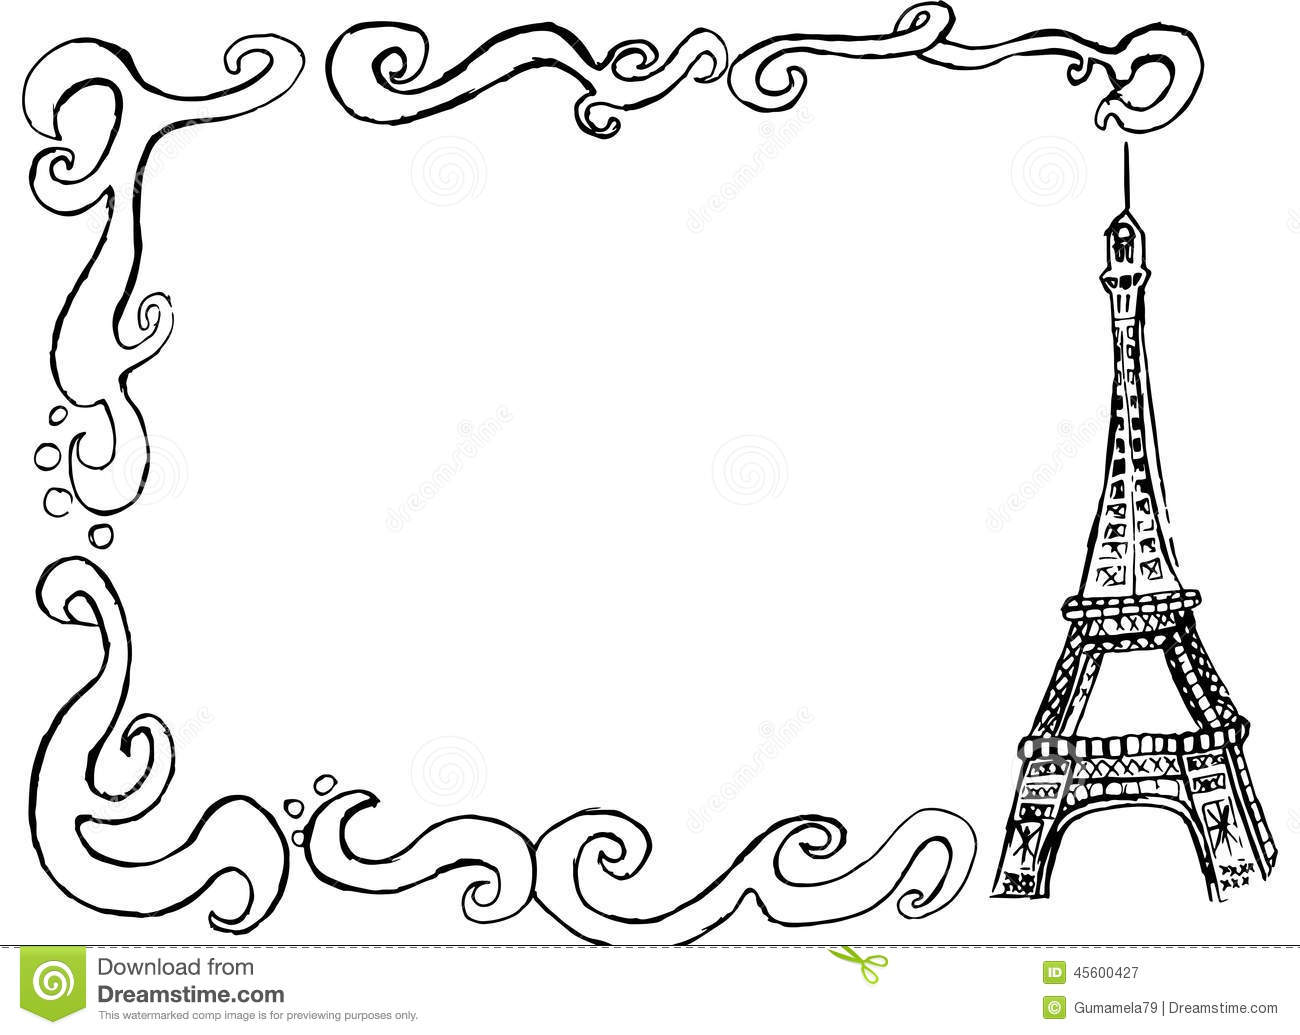 Eiffel tower border stock illustration. Image of patterns